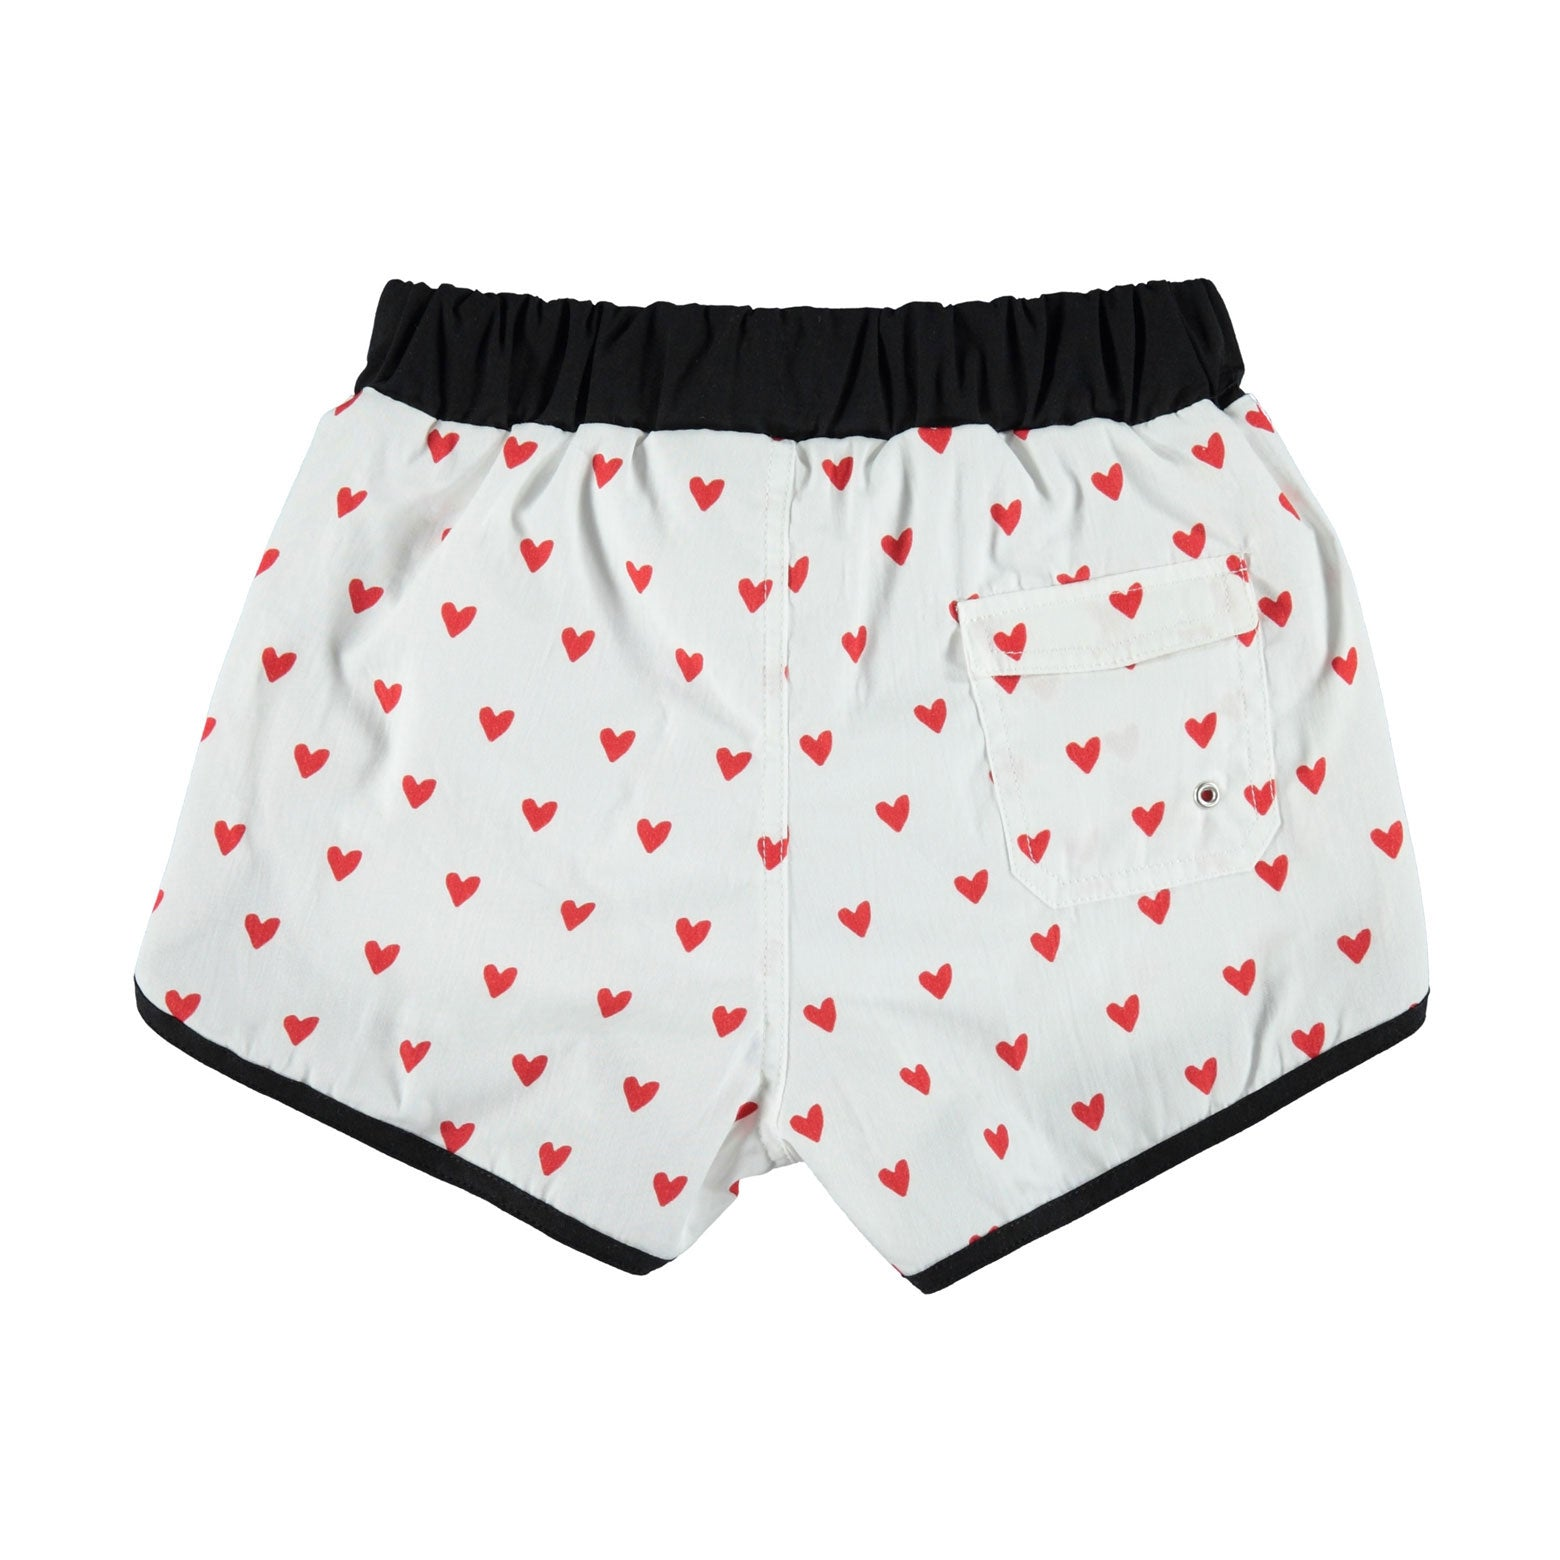 Piupiuchick Red Heart Print Baby Swim Shorts